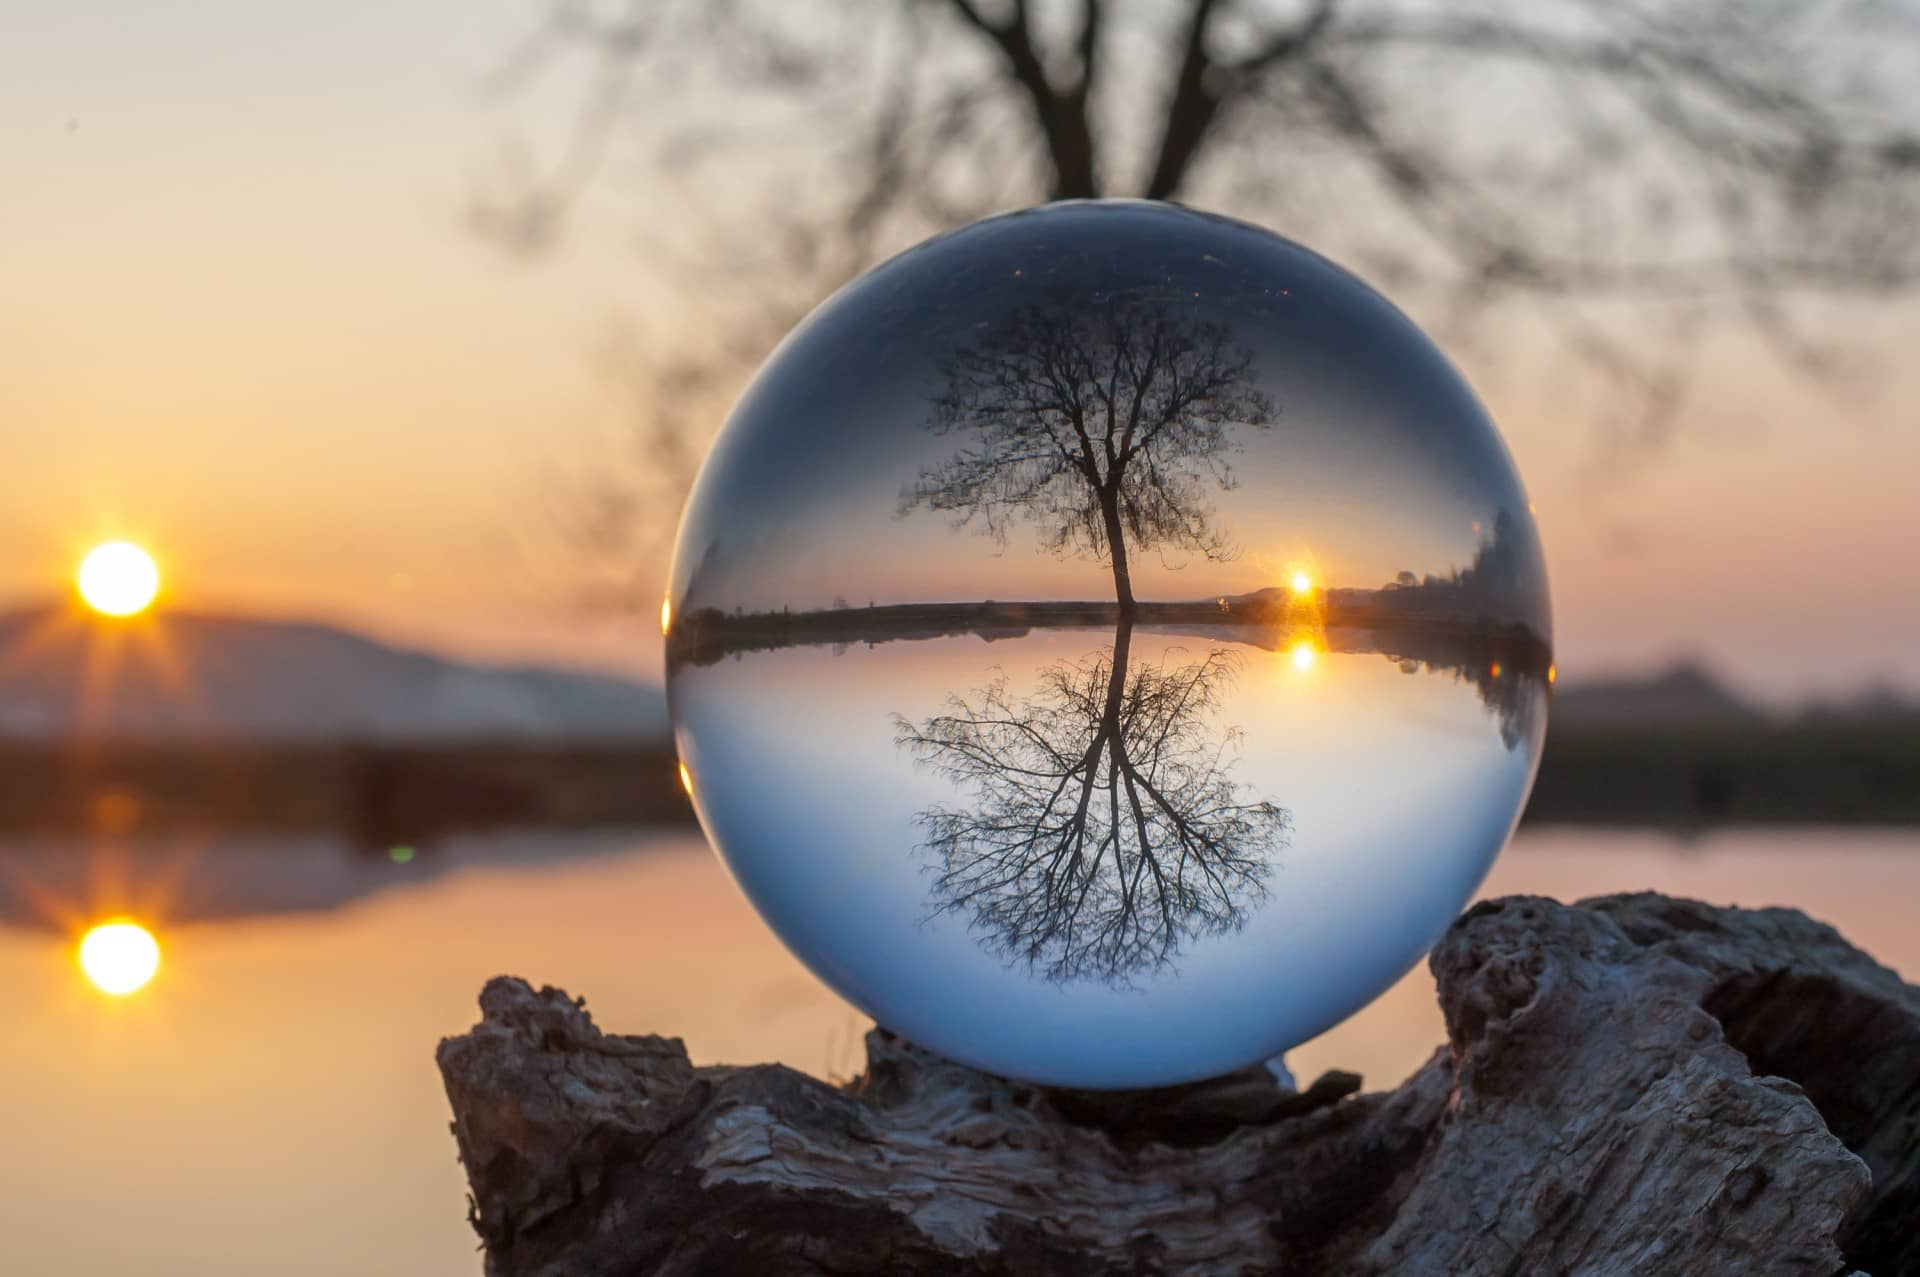 Best Photo Gifts for Photographers - Ideas Photographer Lovers - Glass Ball Technique